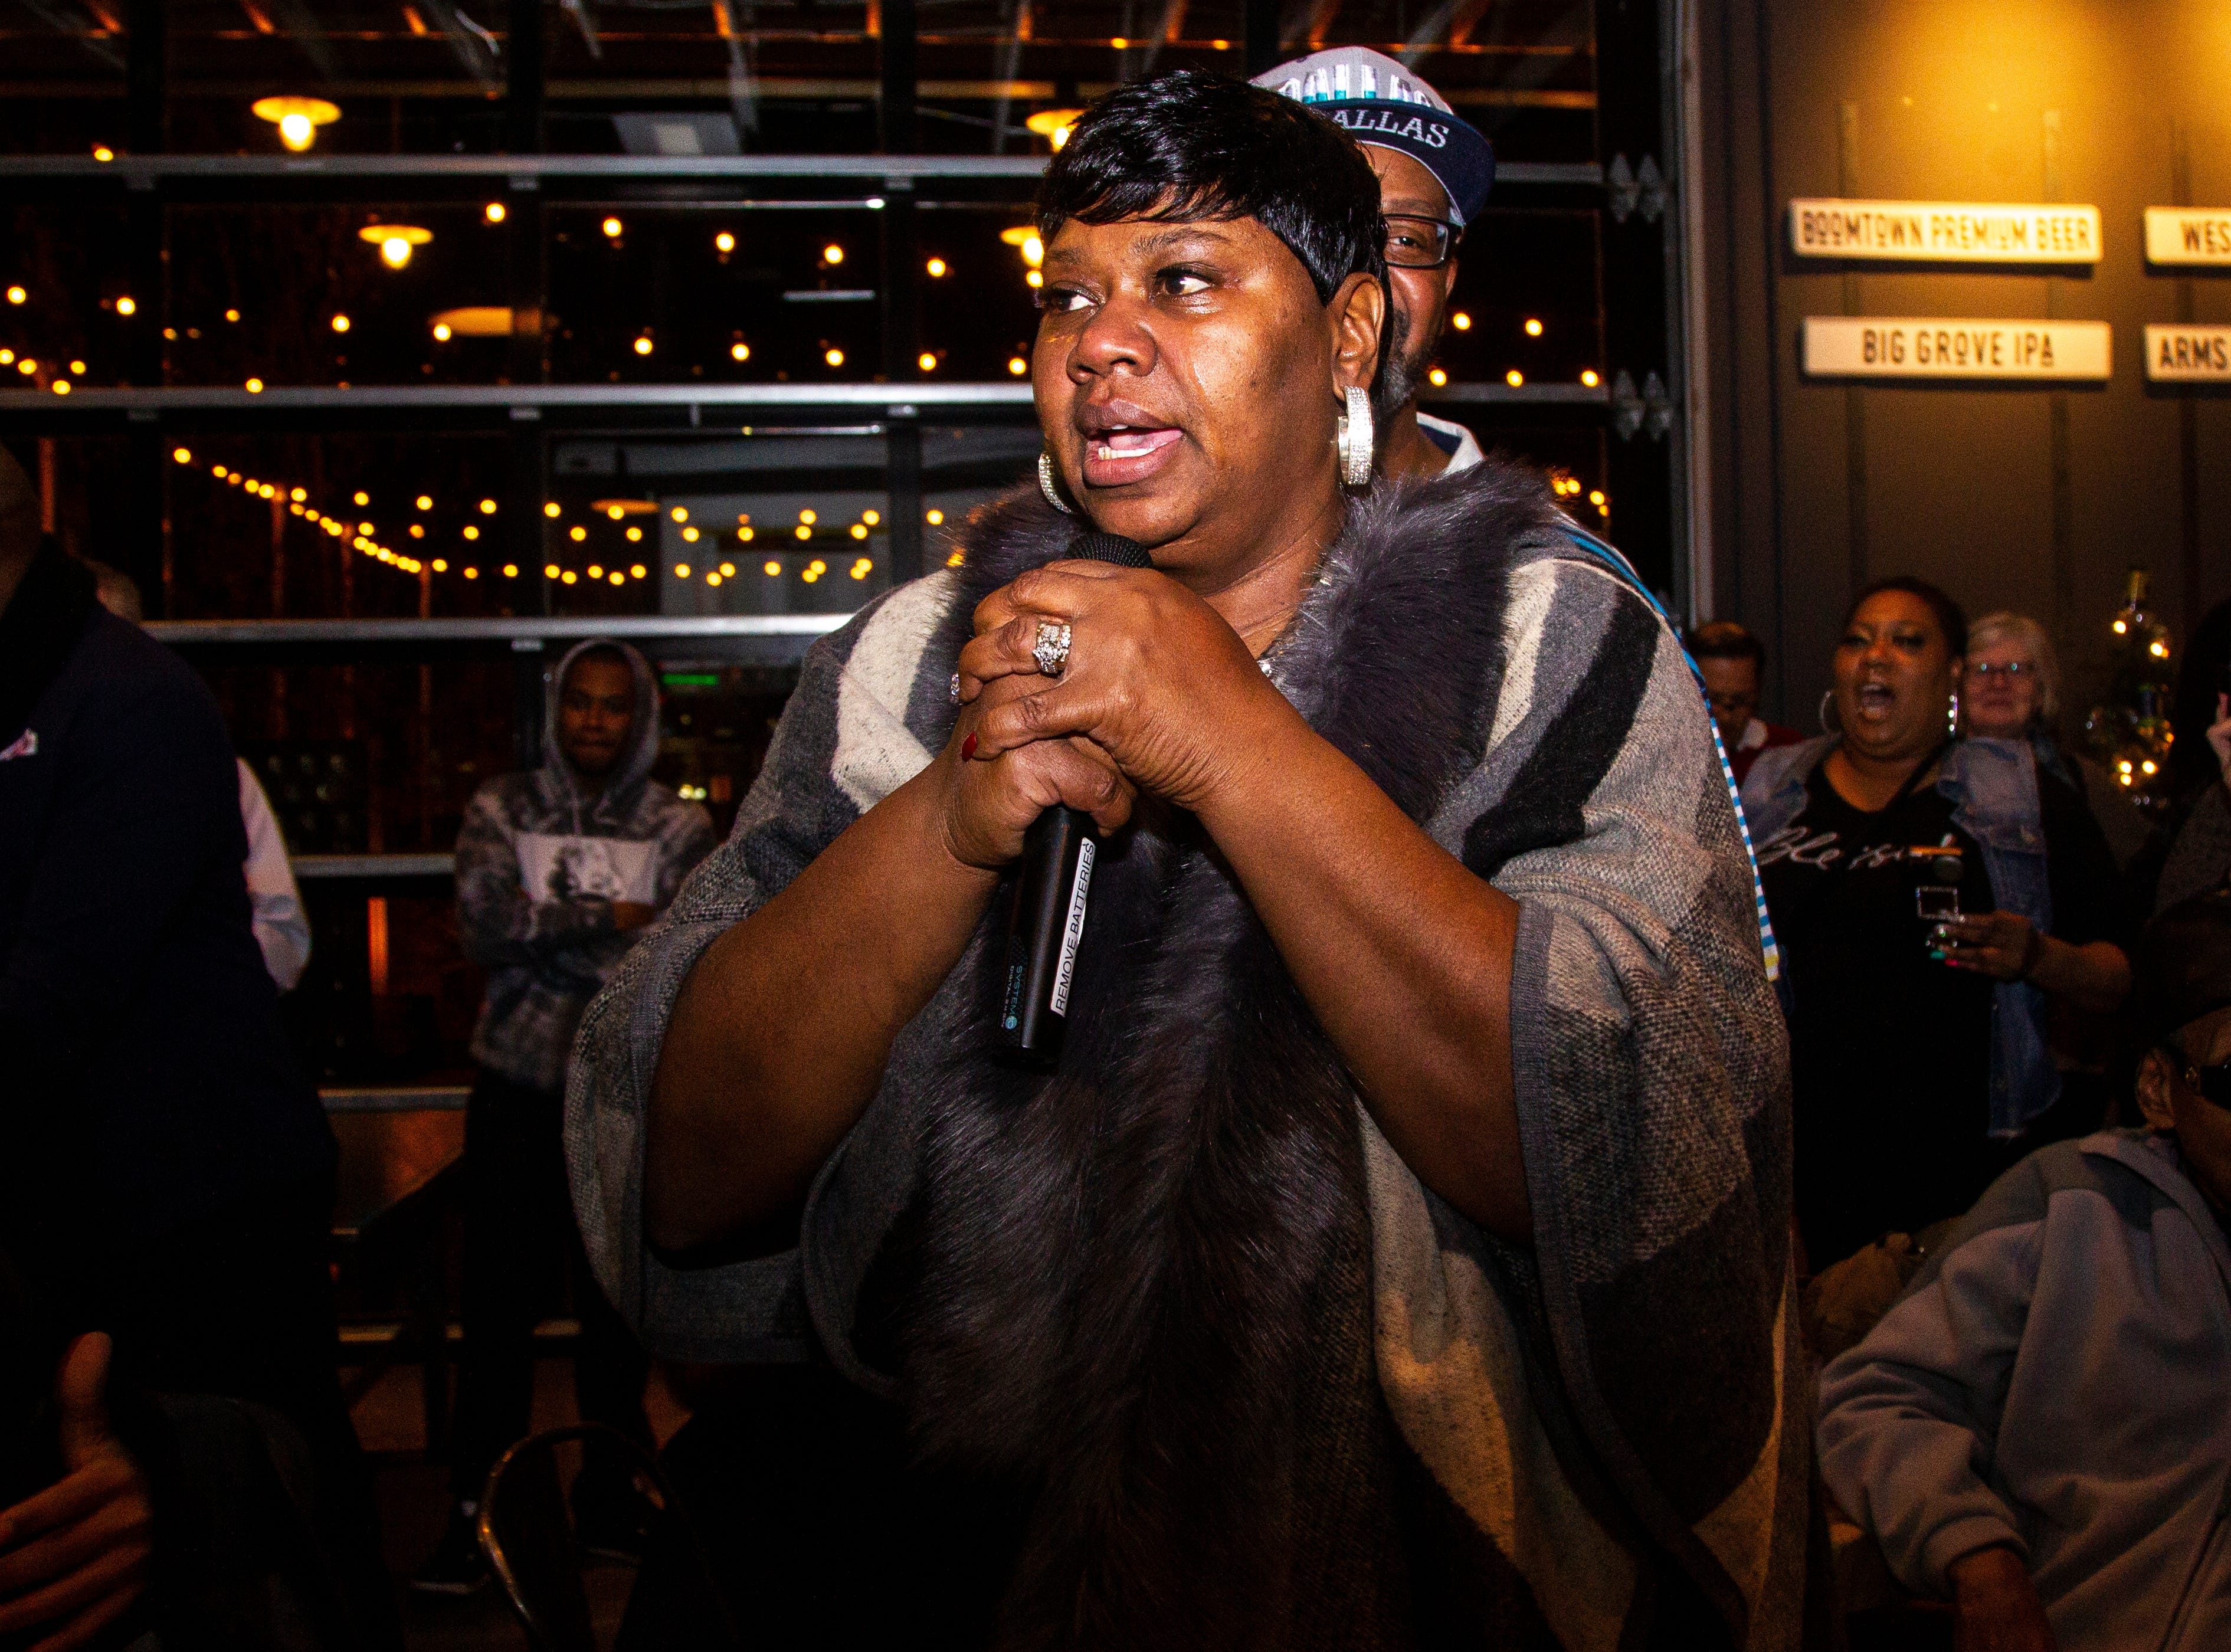 Royceann Porter thanks supporters after learning she won her campaign for Johnson County Supervisor during a special election watch party on Tuesday, Dec. 18, 2018, at Big Grove Brewery in Iowa City.